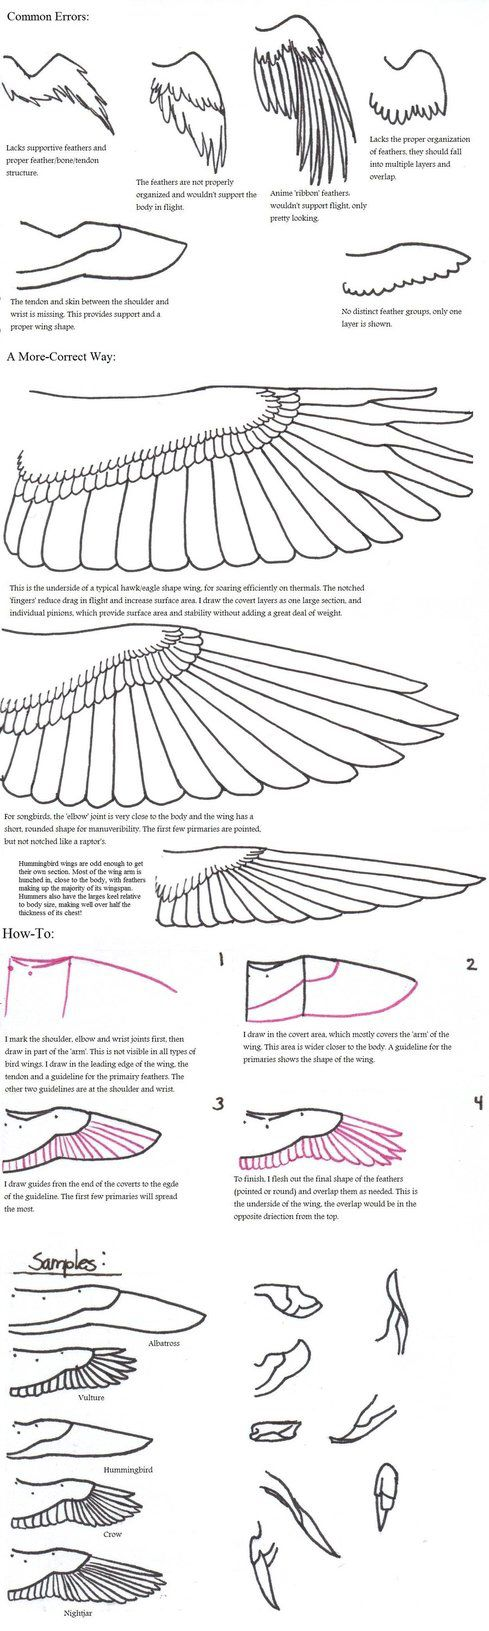 18 best Birds images on Pinterest | Bird, Drawing tutorials and Sketches